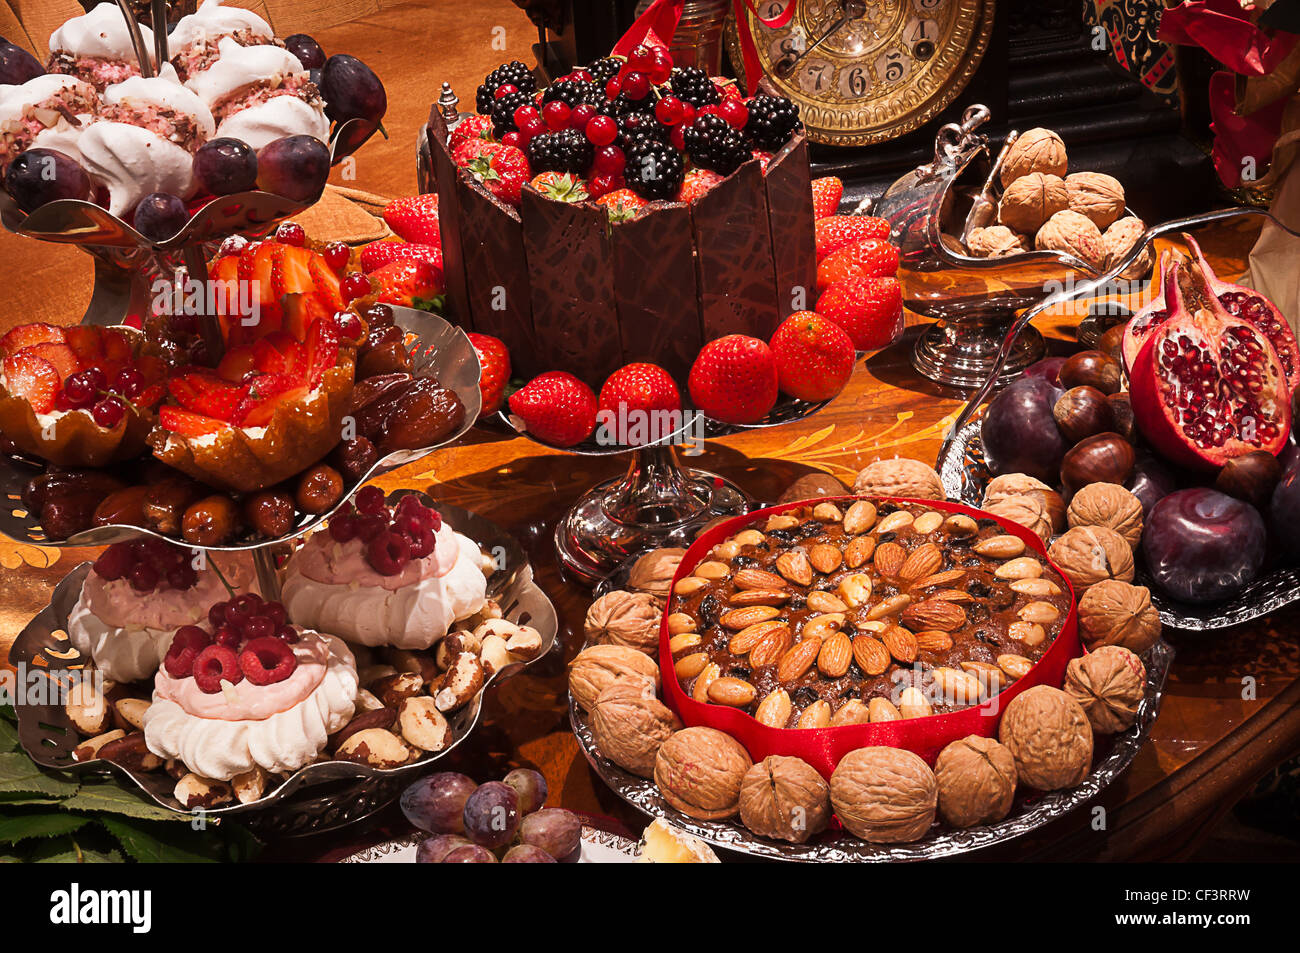 A selection of sweet cakes - Stock Image